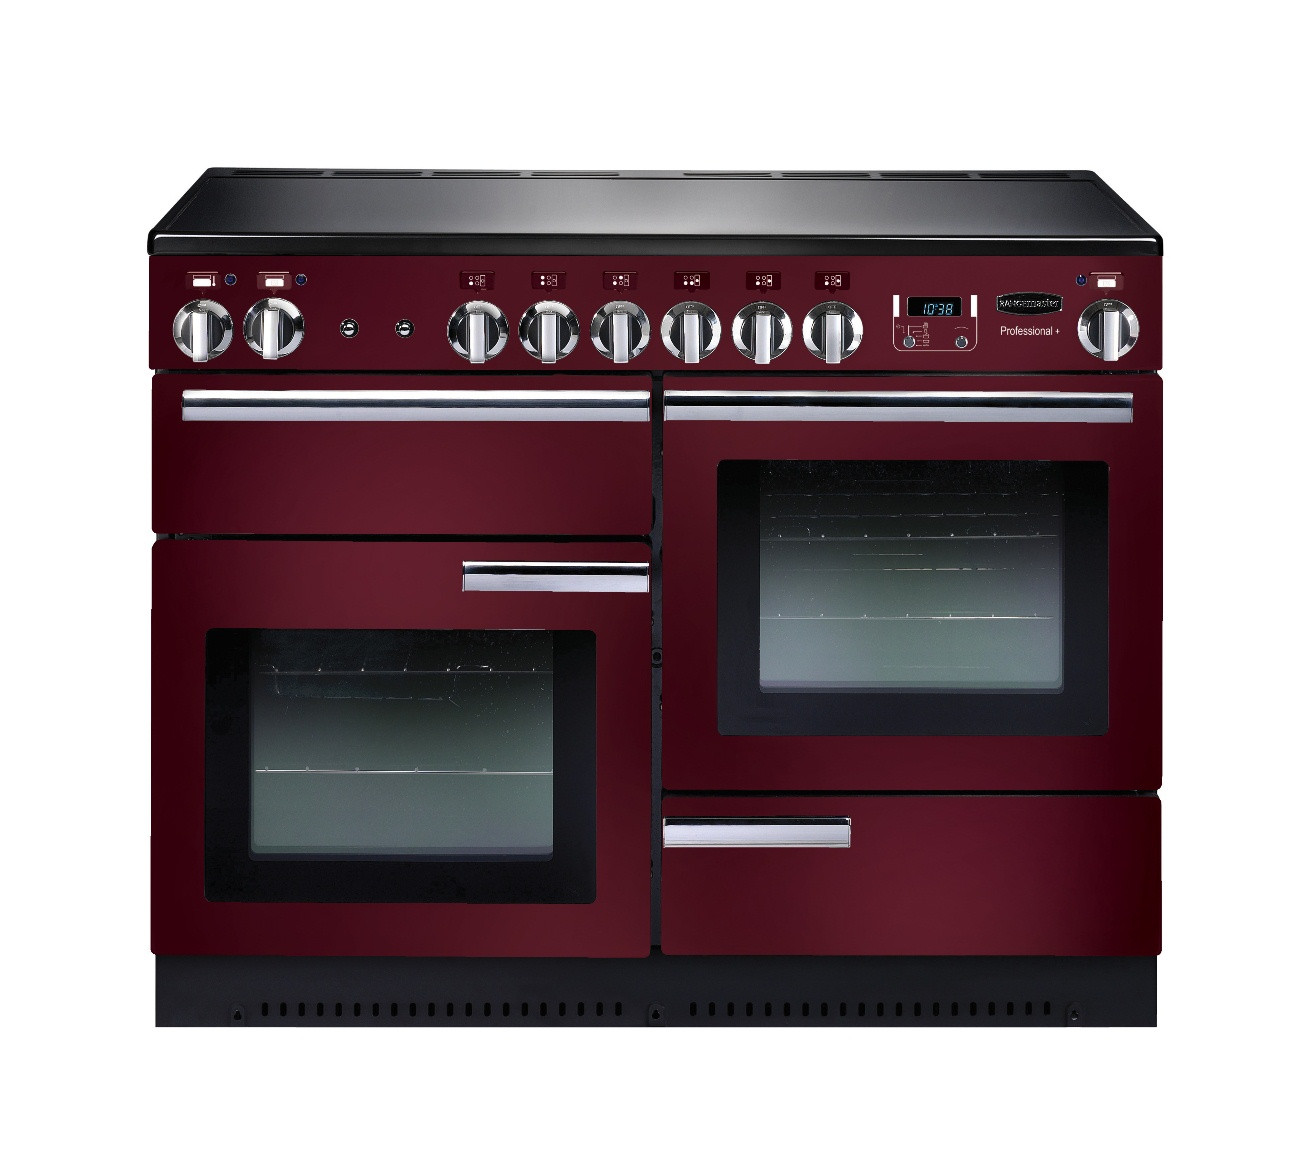 Rangemaster Professional Plus 110 Ceramic Cranberry Range Cooker 91890